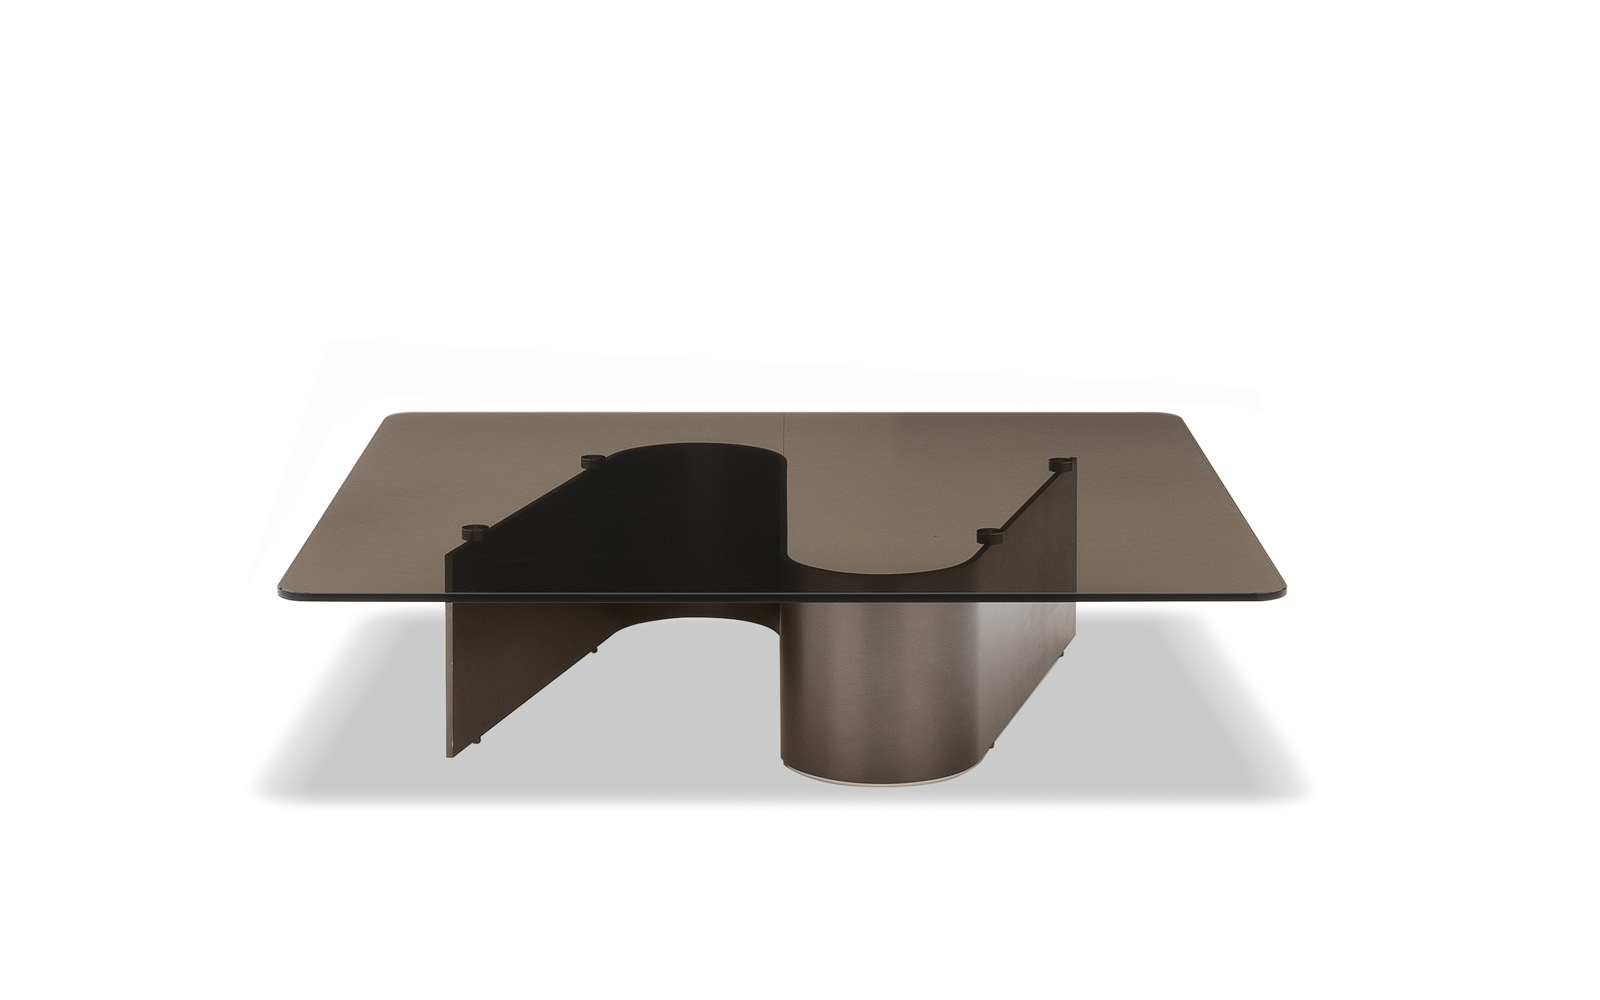 BENDER | COFFEE TABLES - EN top 25 stunning center table ideas Top 25 Stunning Center Table Ideas 21131 z BENDER 02 SCONT the most exquisite center table ideas The Most Exquisite Center Table Ideas 21131 z BENDER 02 SCONT